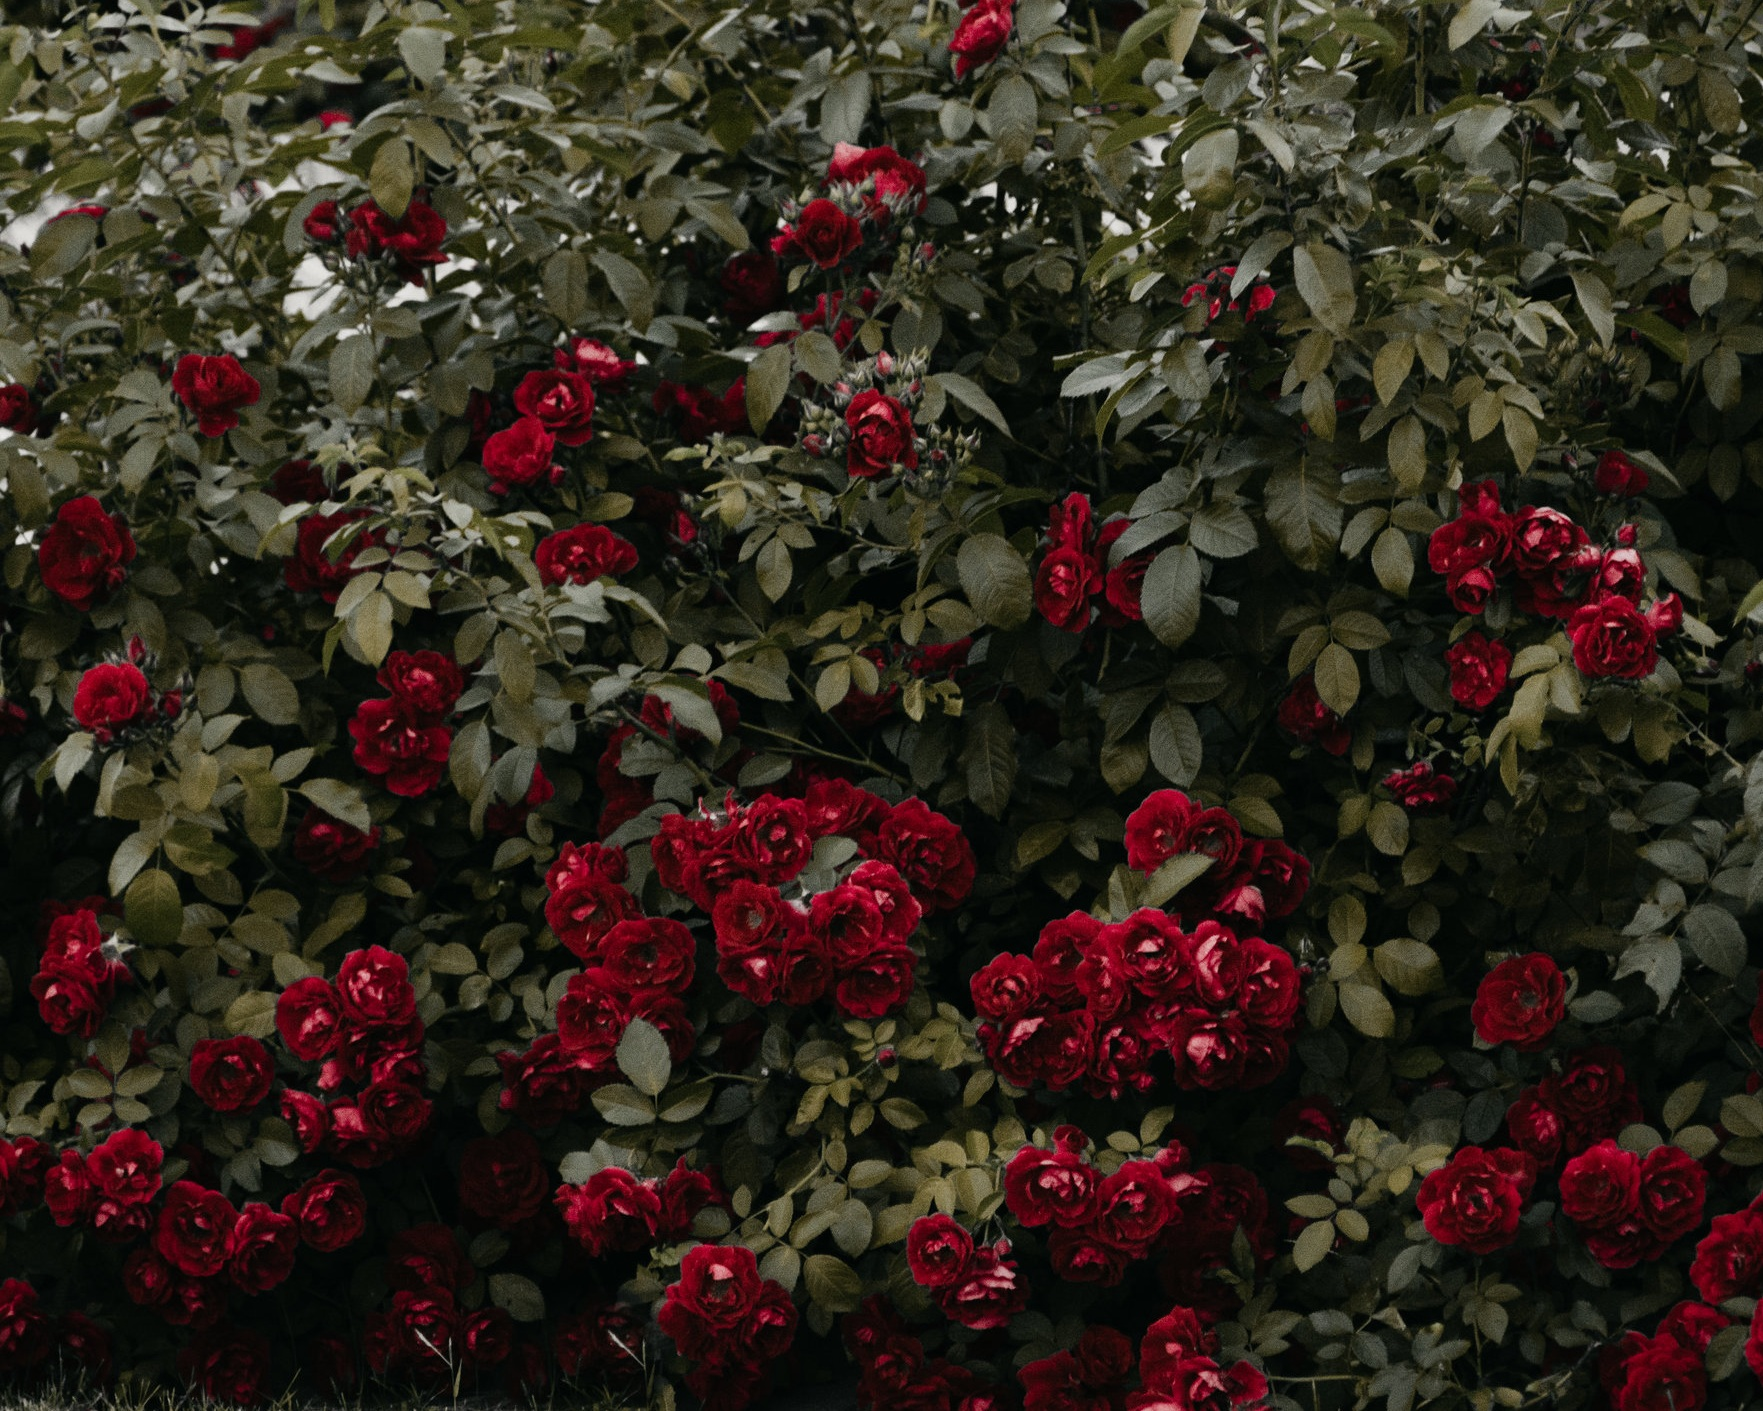 Rose - One of the fundamental symbols of alchemy with many manuscripts called 'Rosarium' meaning Rose Garden. Roses were widely used medicinally in ancient times. The scent of a rose relaxes and strengthens, imparting a feeling of calm and well-being.